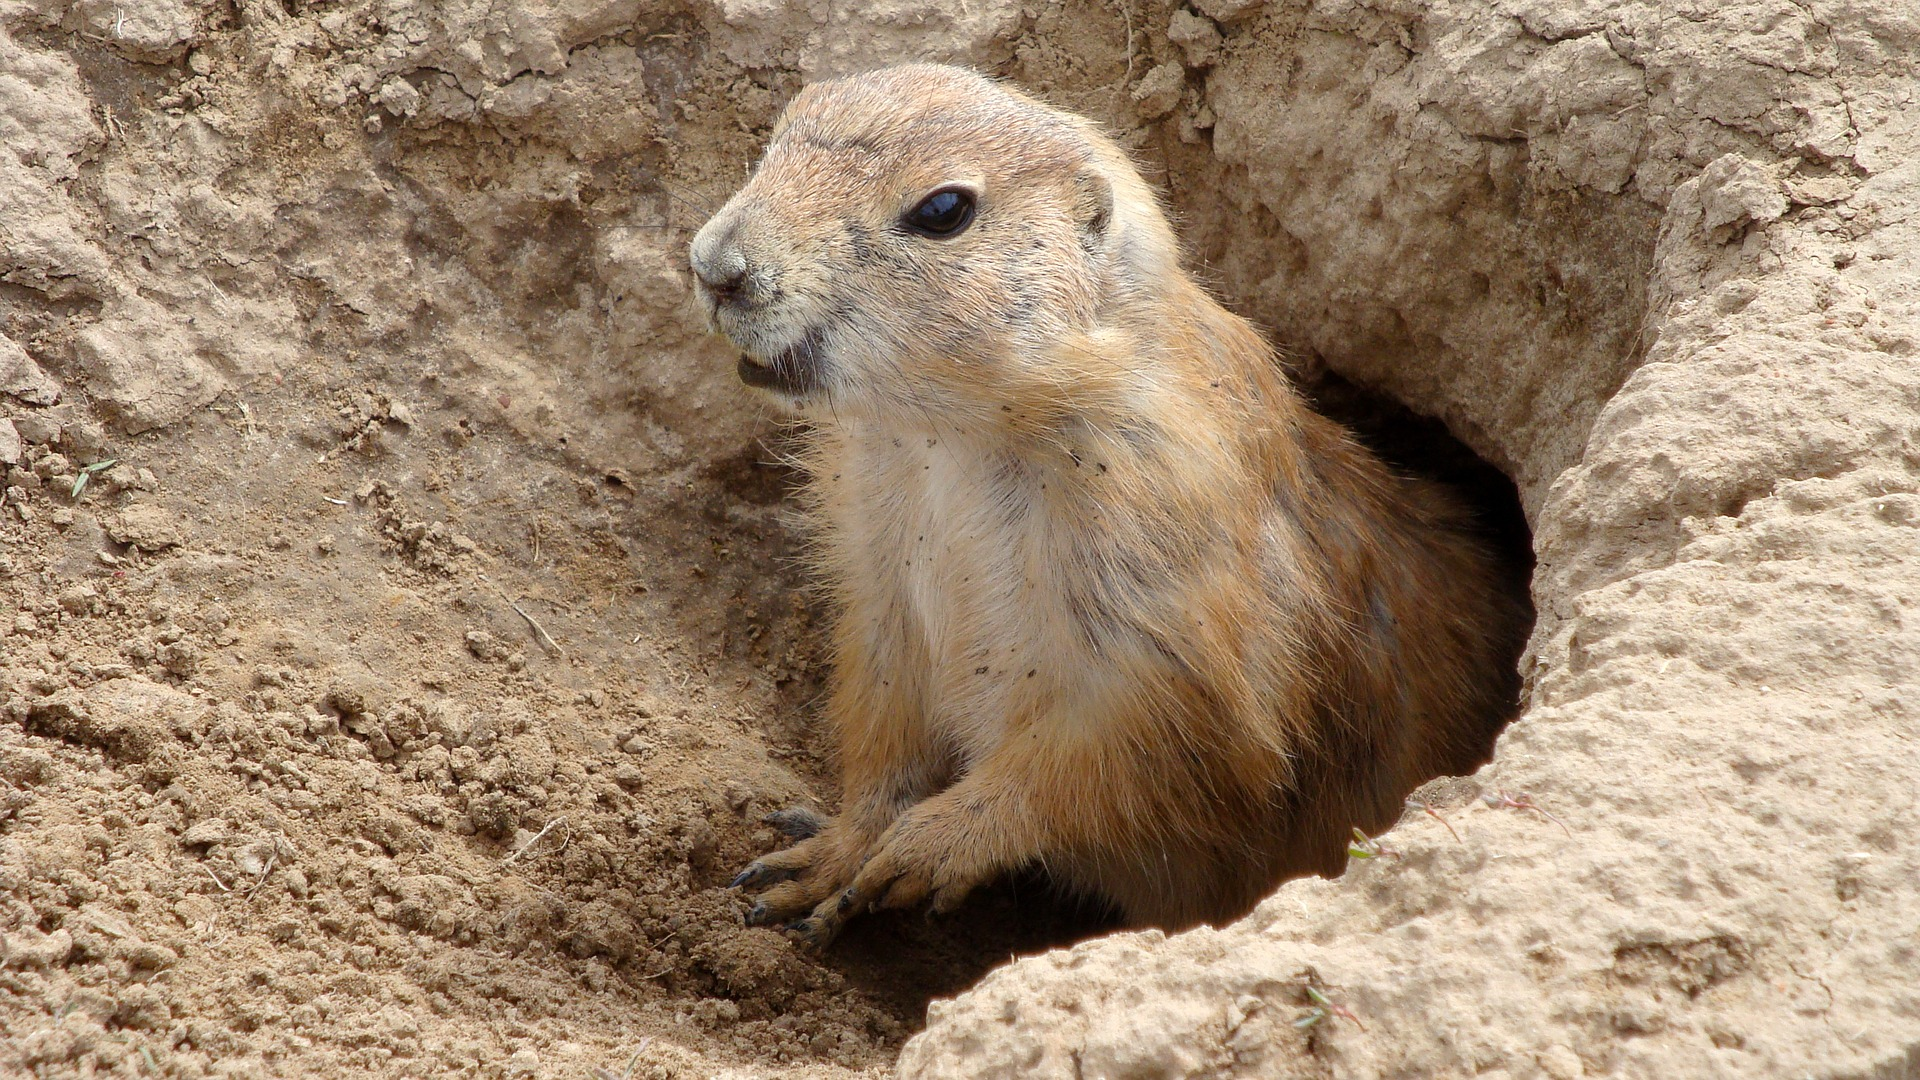 Here's Why Groundhog Day Is Dumb (So Buy Our Stuff)